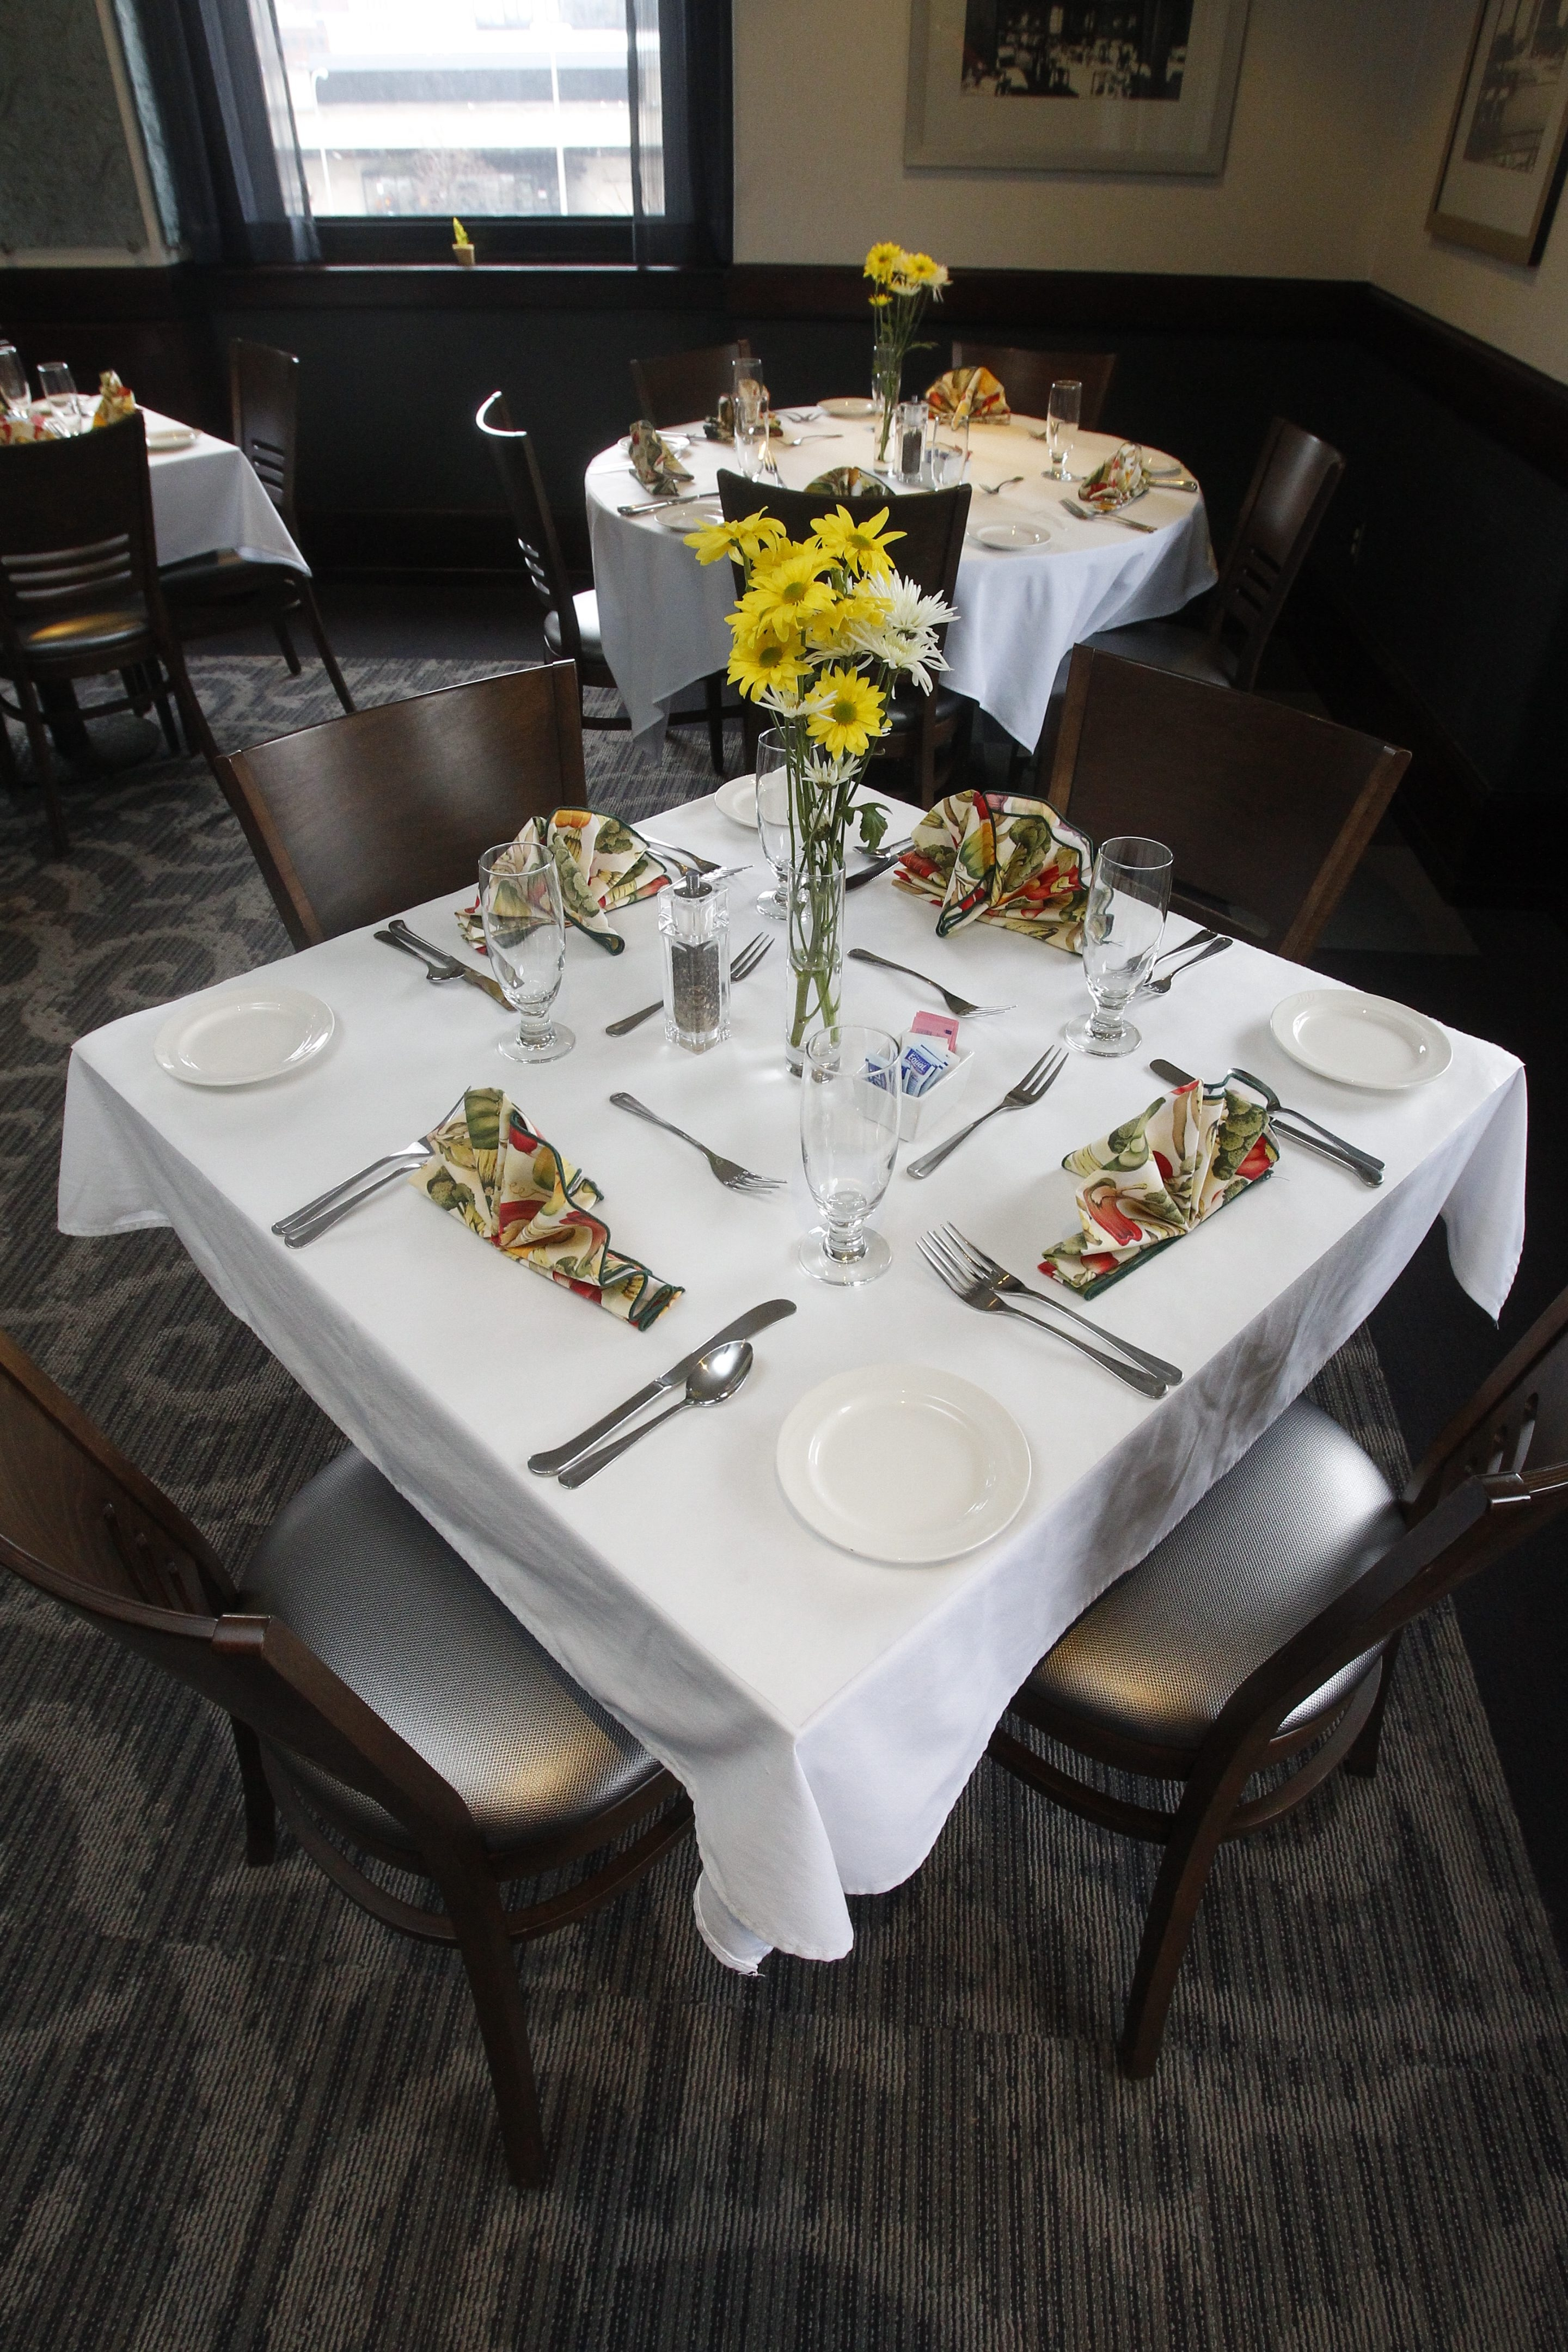 Erie Community College's EM Statler Dining Room on its City Campus will participate in Dining Out for Life.